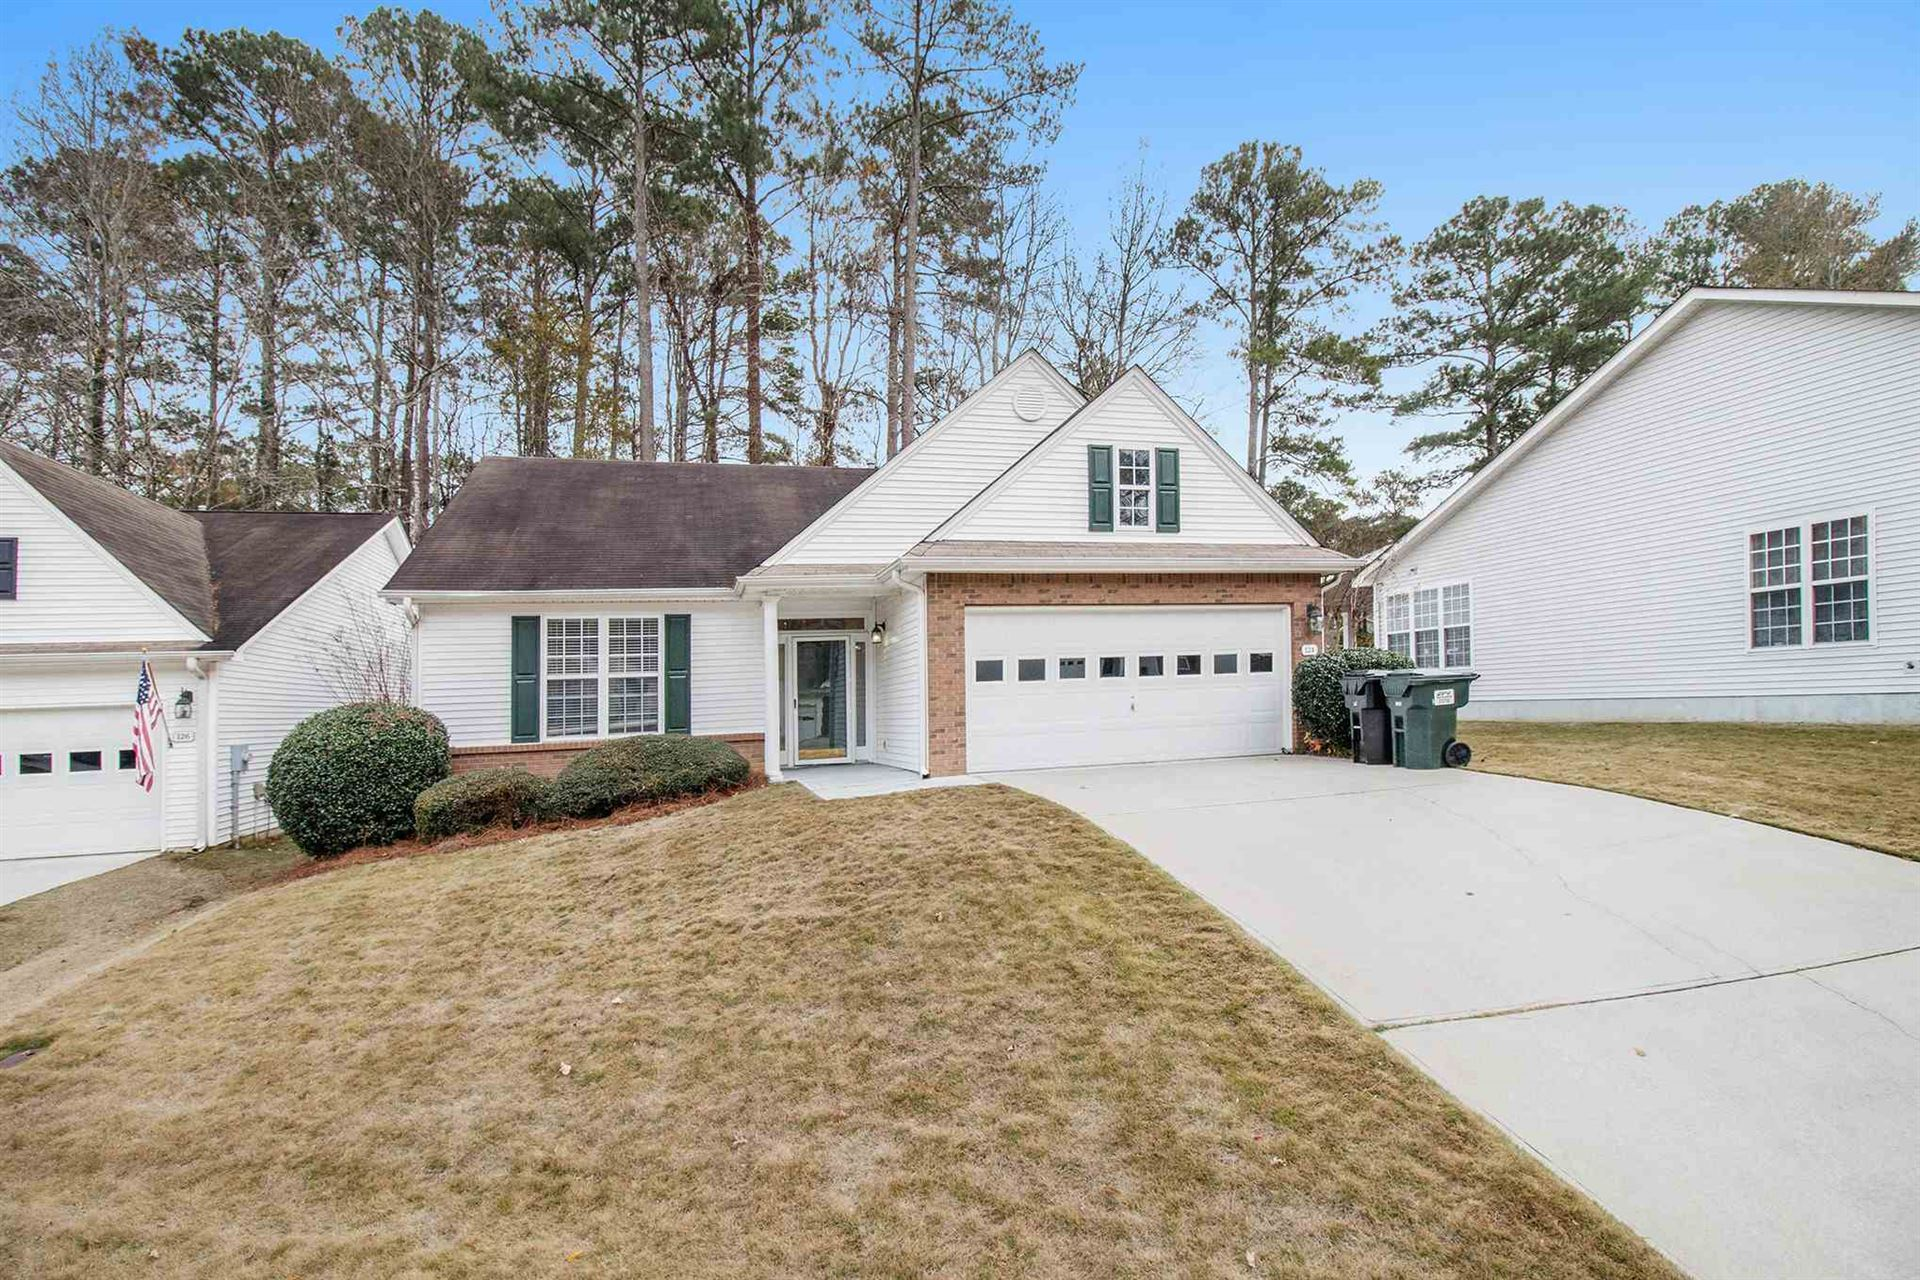 124 Willow Crk, Peachtree City, GA 30269 - #: 8907845